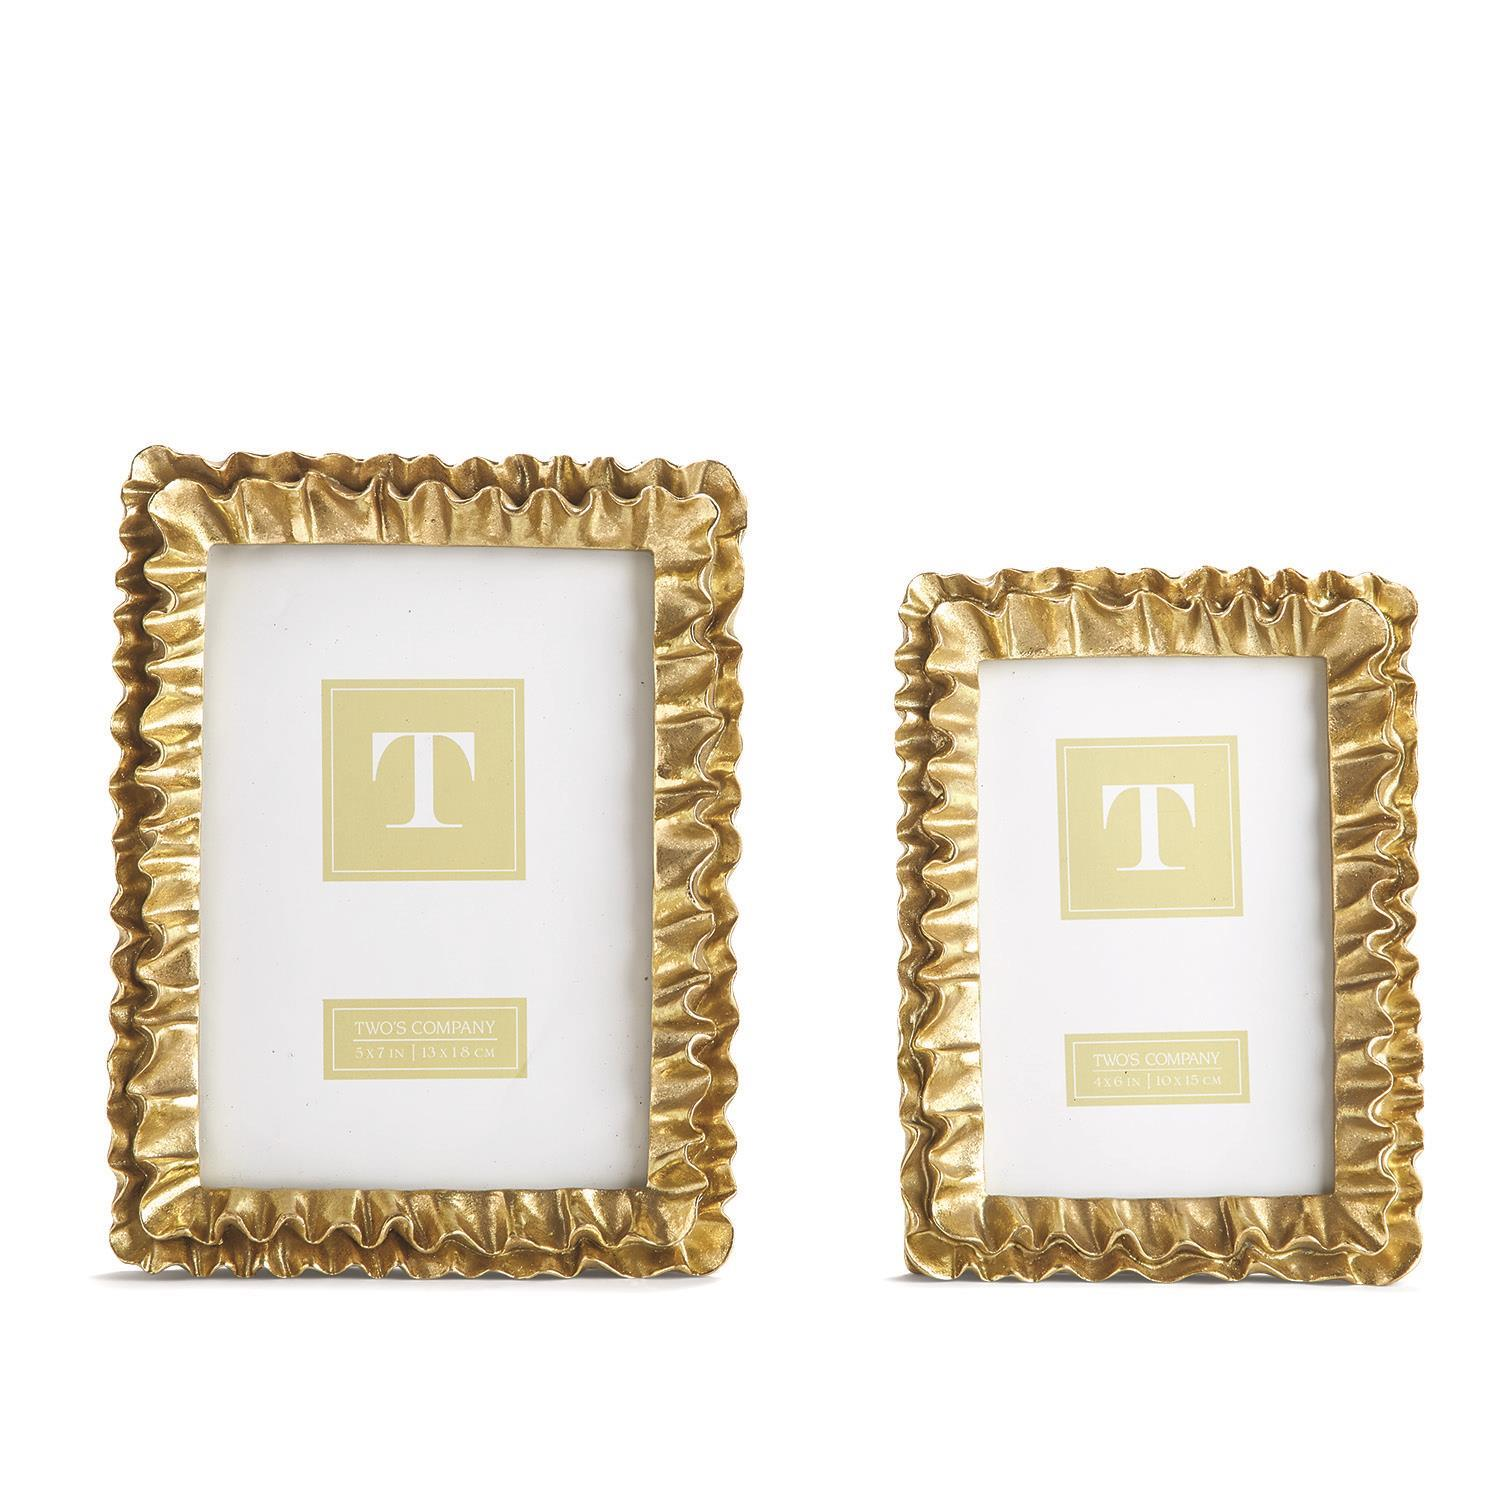 30cda7d8460d S 2 Gold Ruffles Frames Includes 2 Sizes. COLLECTION